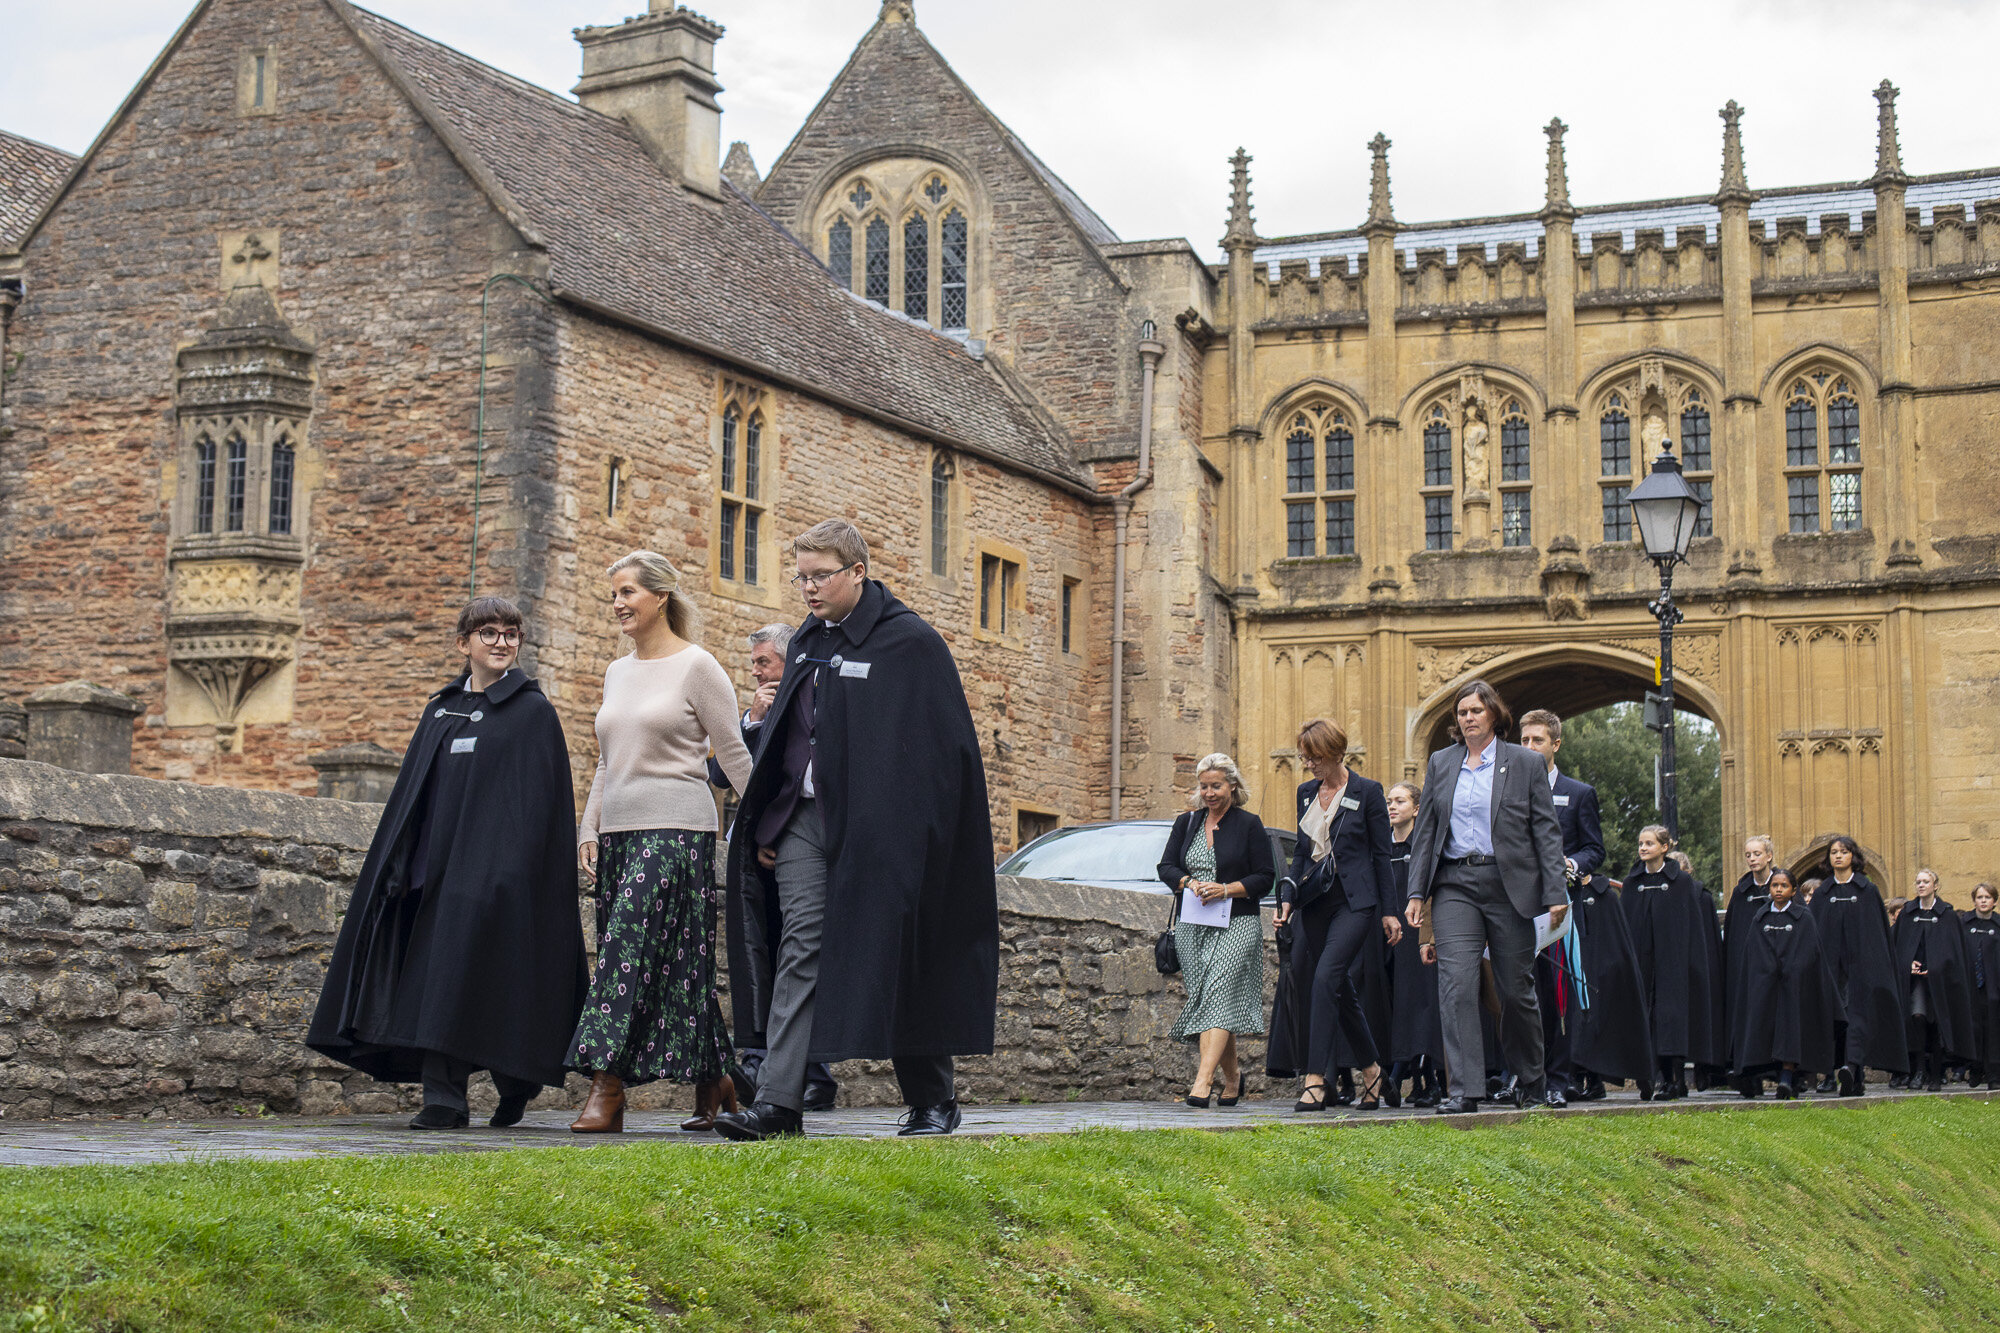 The Countess of Wessex visits Wells Cathedral Chorister Trust - September 2019 11.jpg